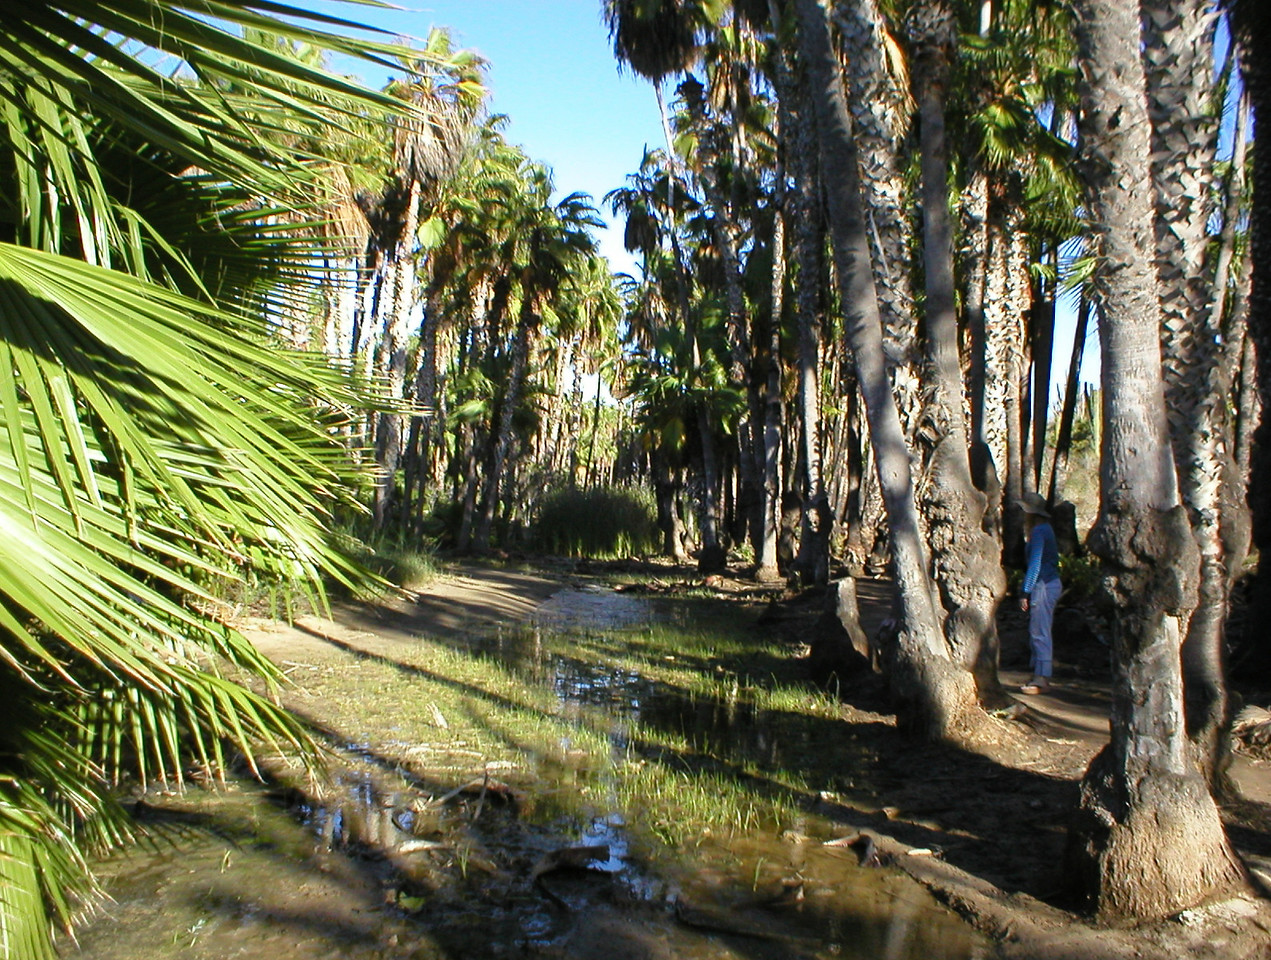 The last part of the road is driving across a small creek with big bumps after which you can park. The beach is about a 500 meter walk through an oasis type jungle.